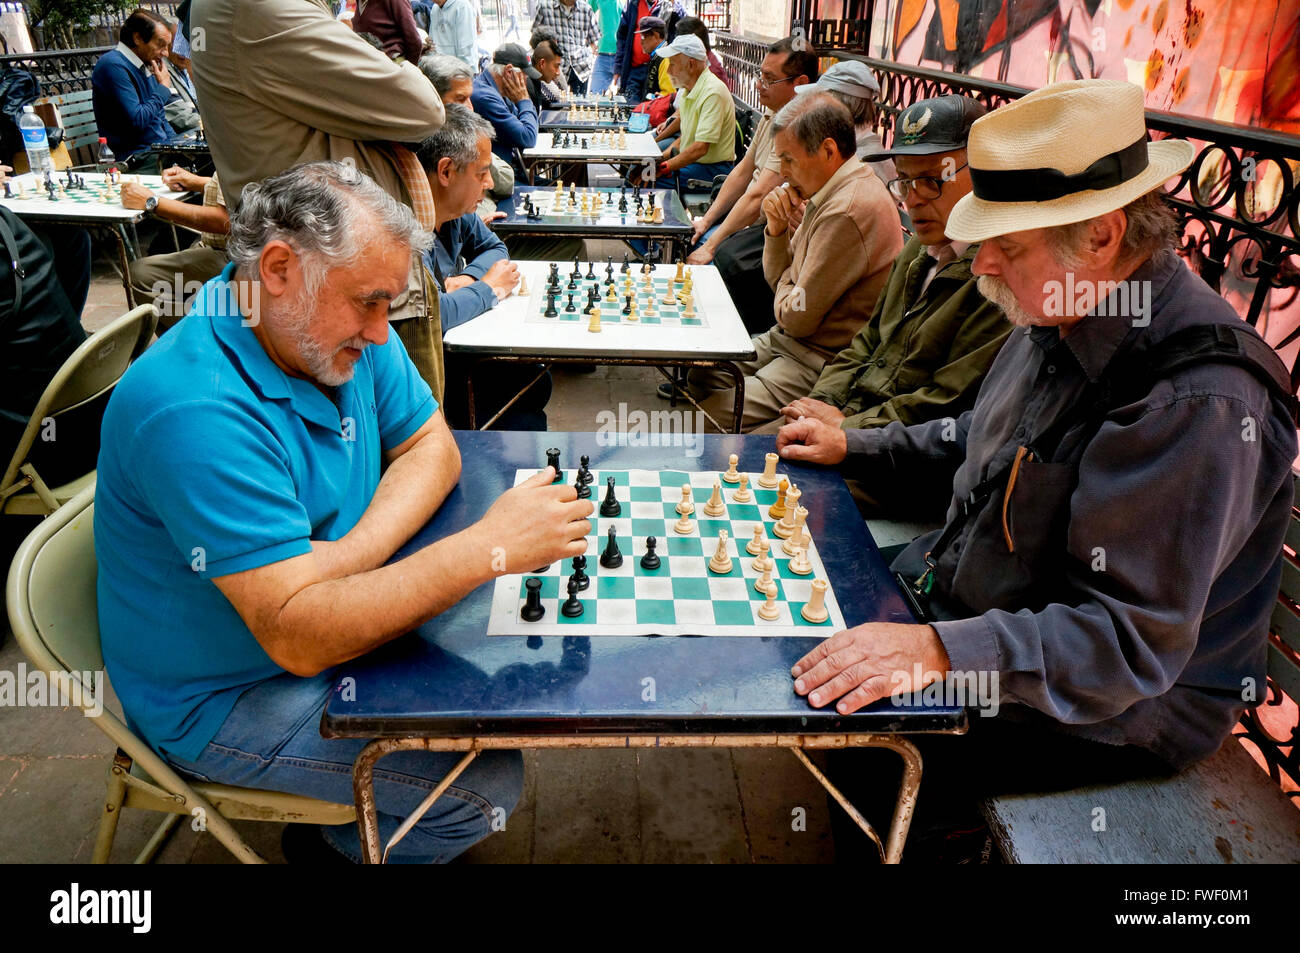 Older Hispanic Mexican men playing chess in Mexico City, Mexico - Stock Image